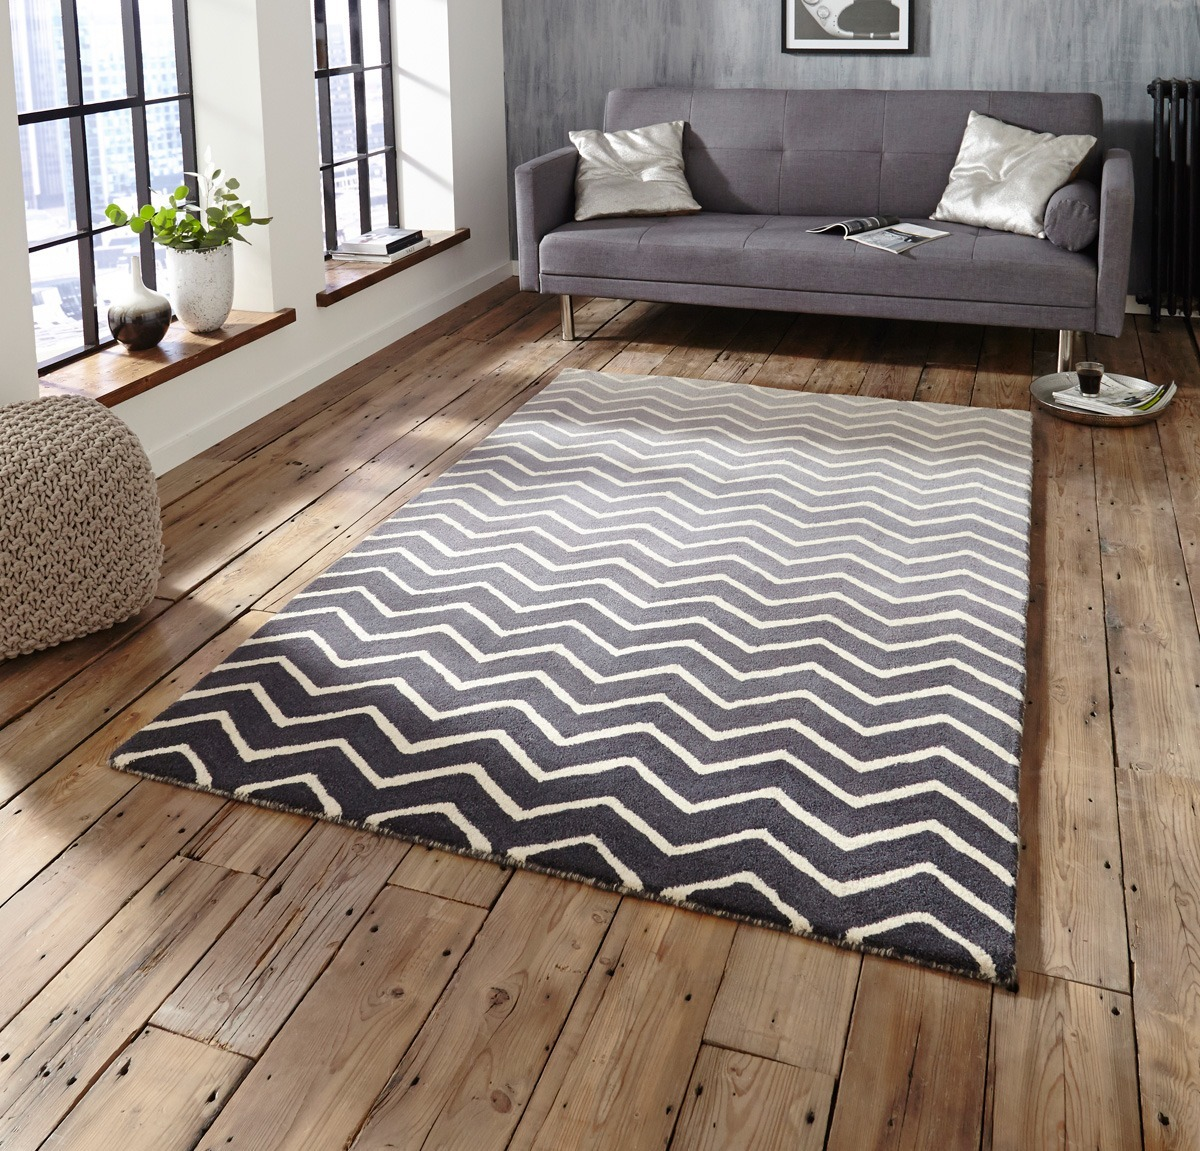 Spectrum Sp22 Rug In Grey White Free Uk Delivery